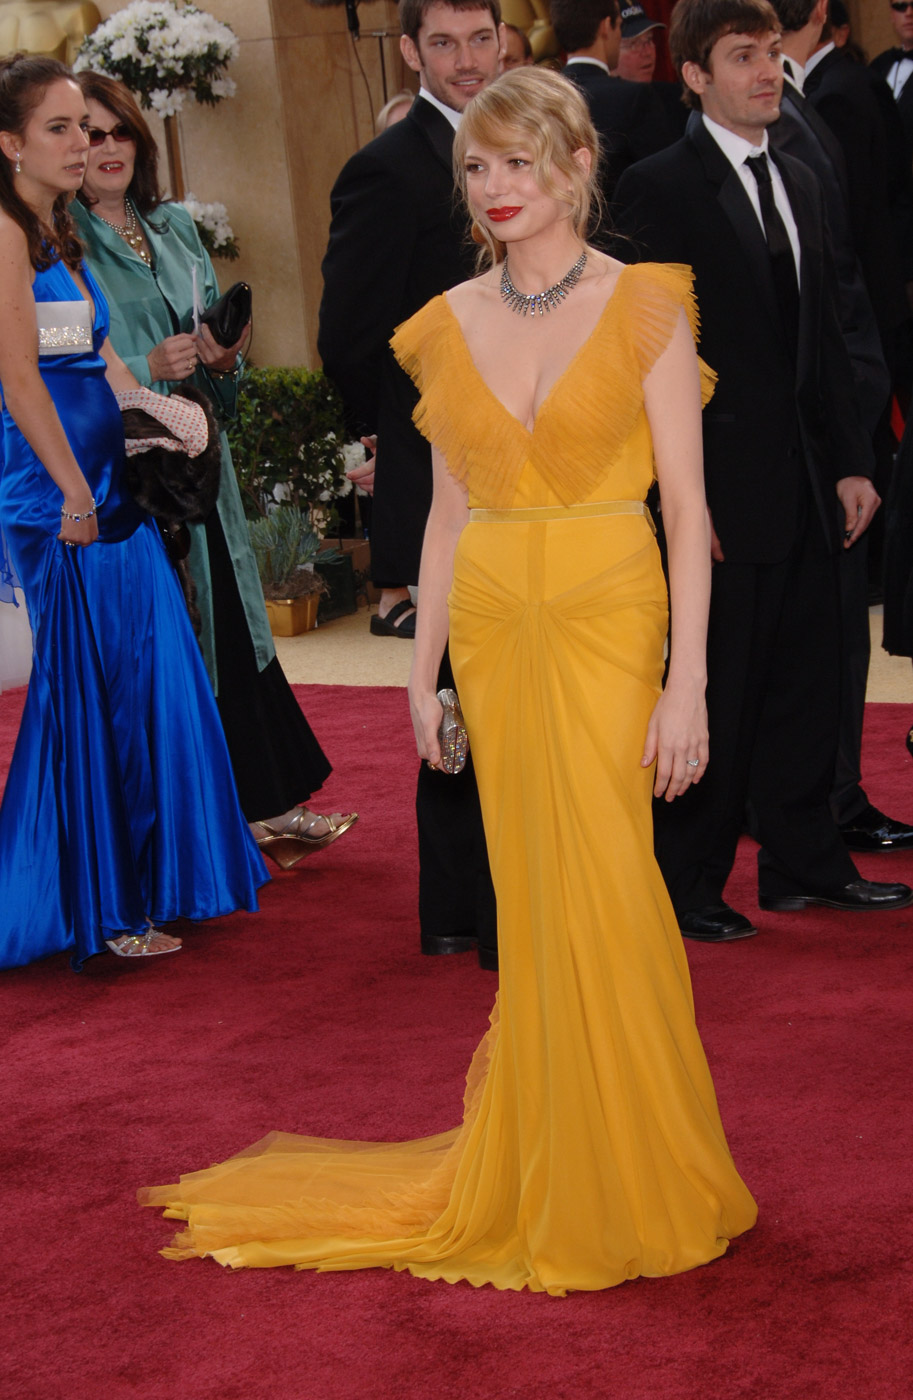 COLOR BLOCK. Michelle Williams plays with color in a Vera Wang gown.